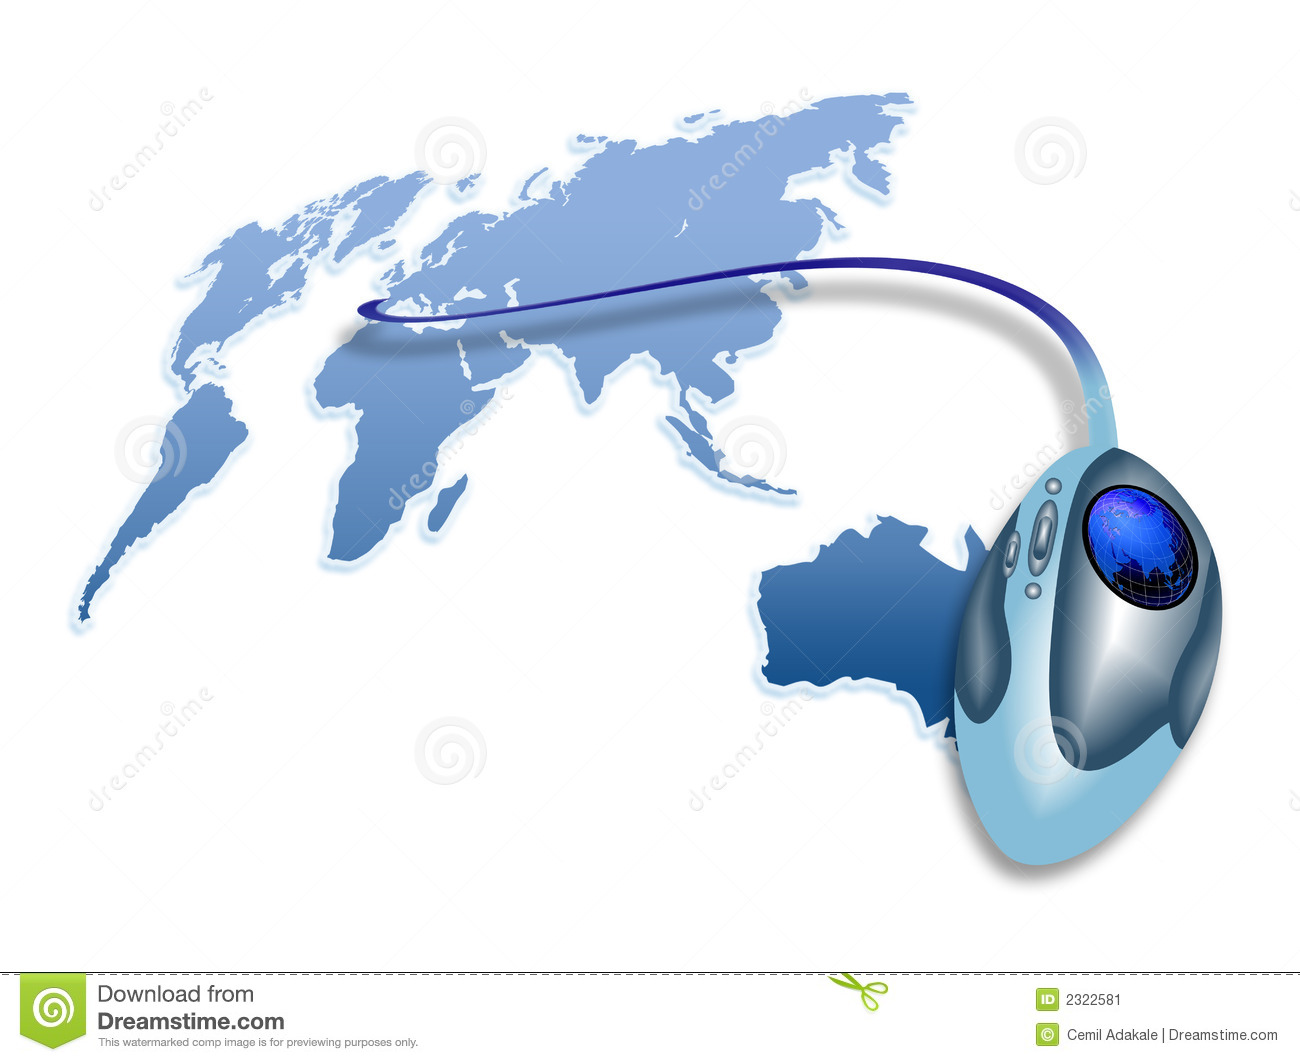 MOUSE OF WORLD